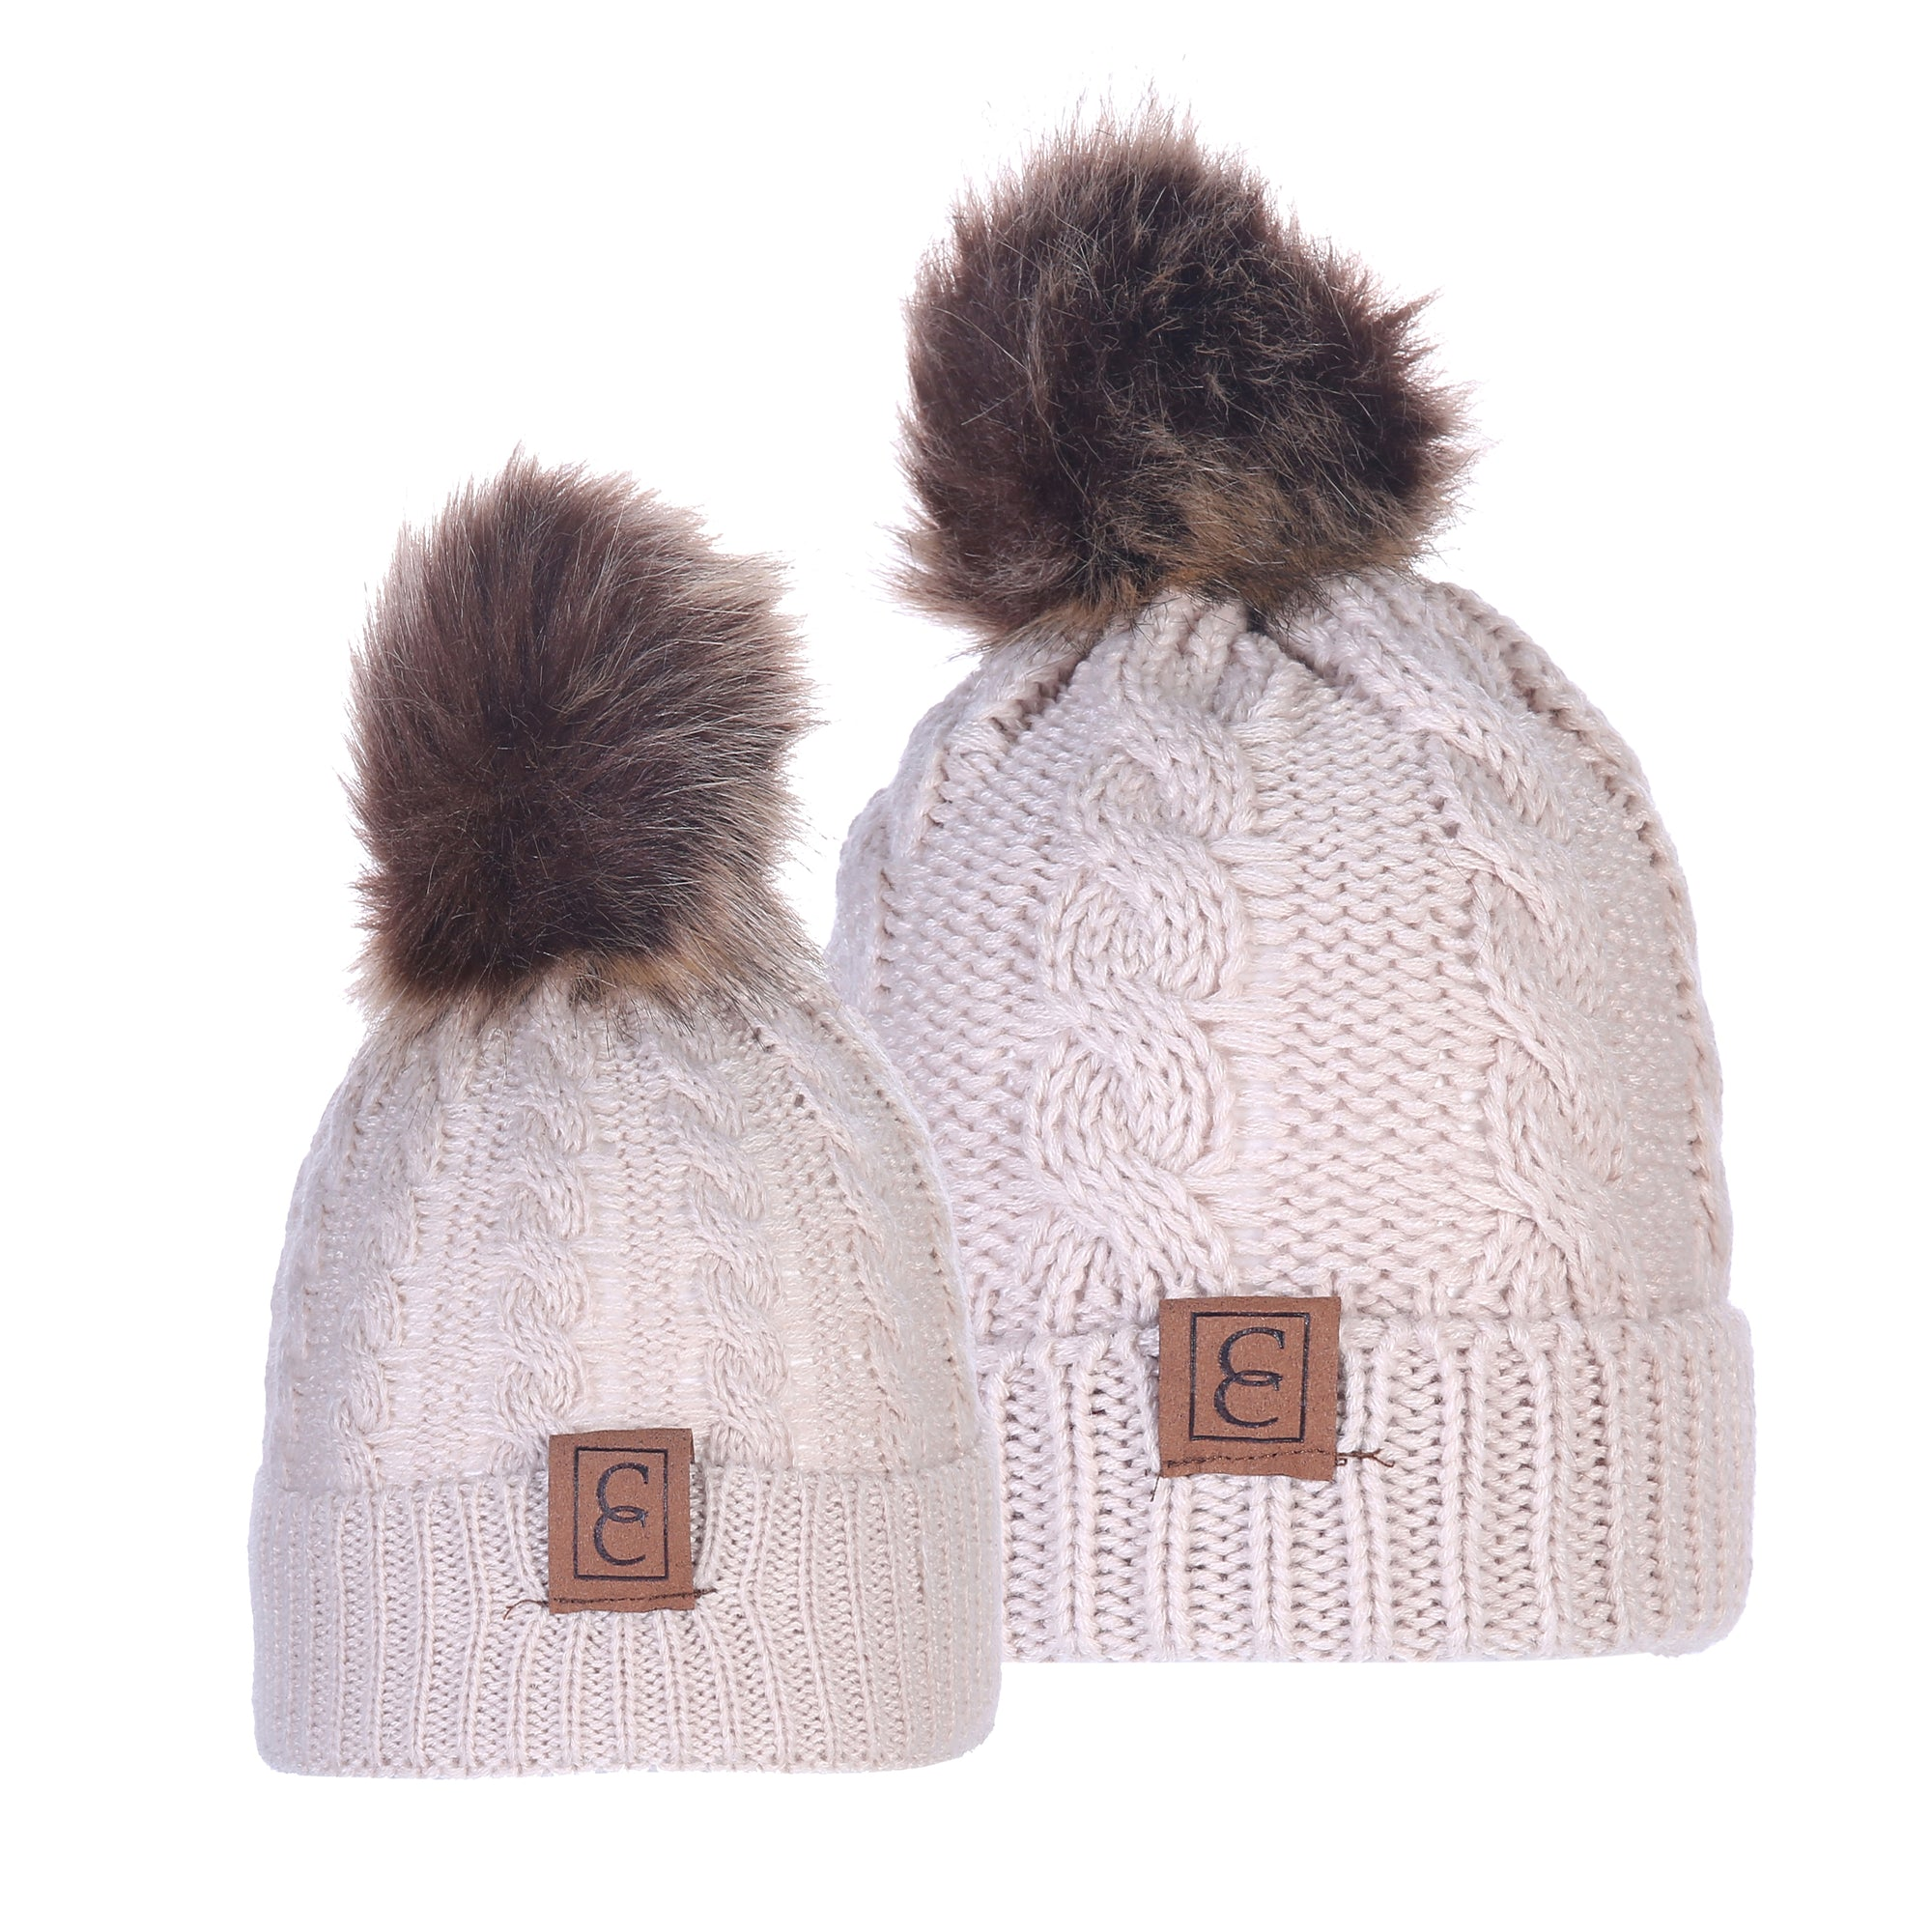 551f34d3fc8d3 cc chic MOM   ME POM BEANIES - Barbados Leather